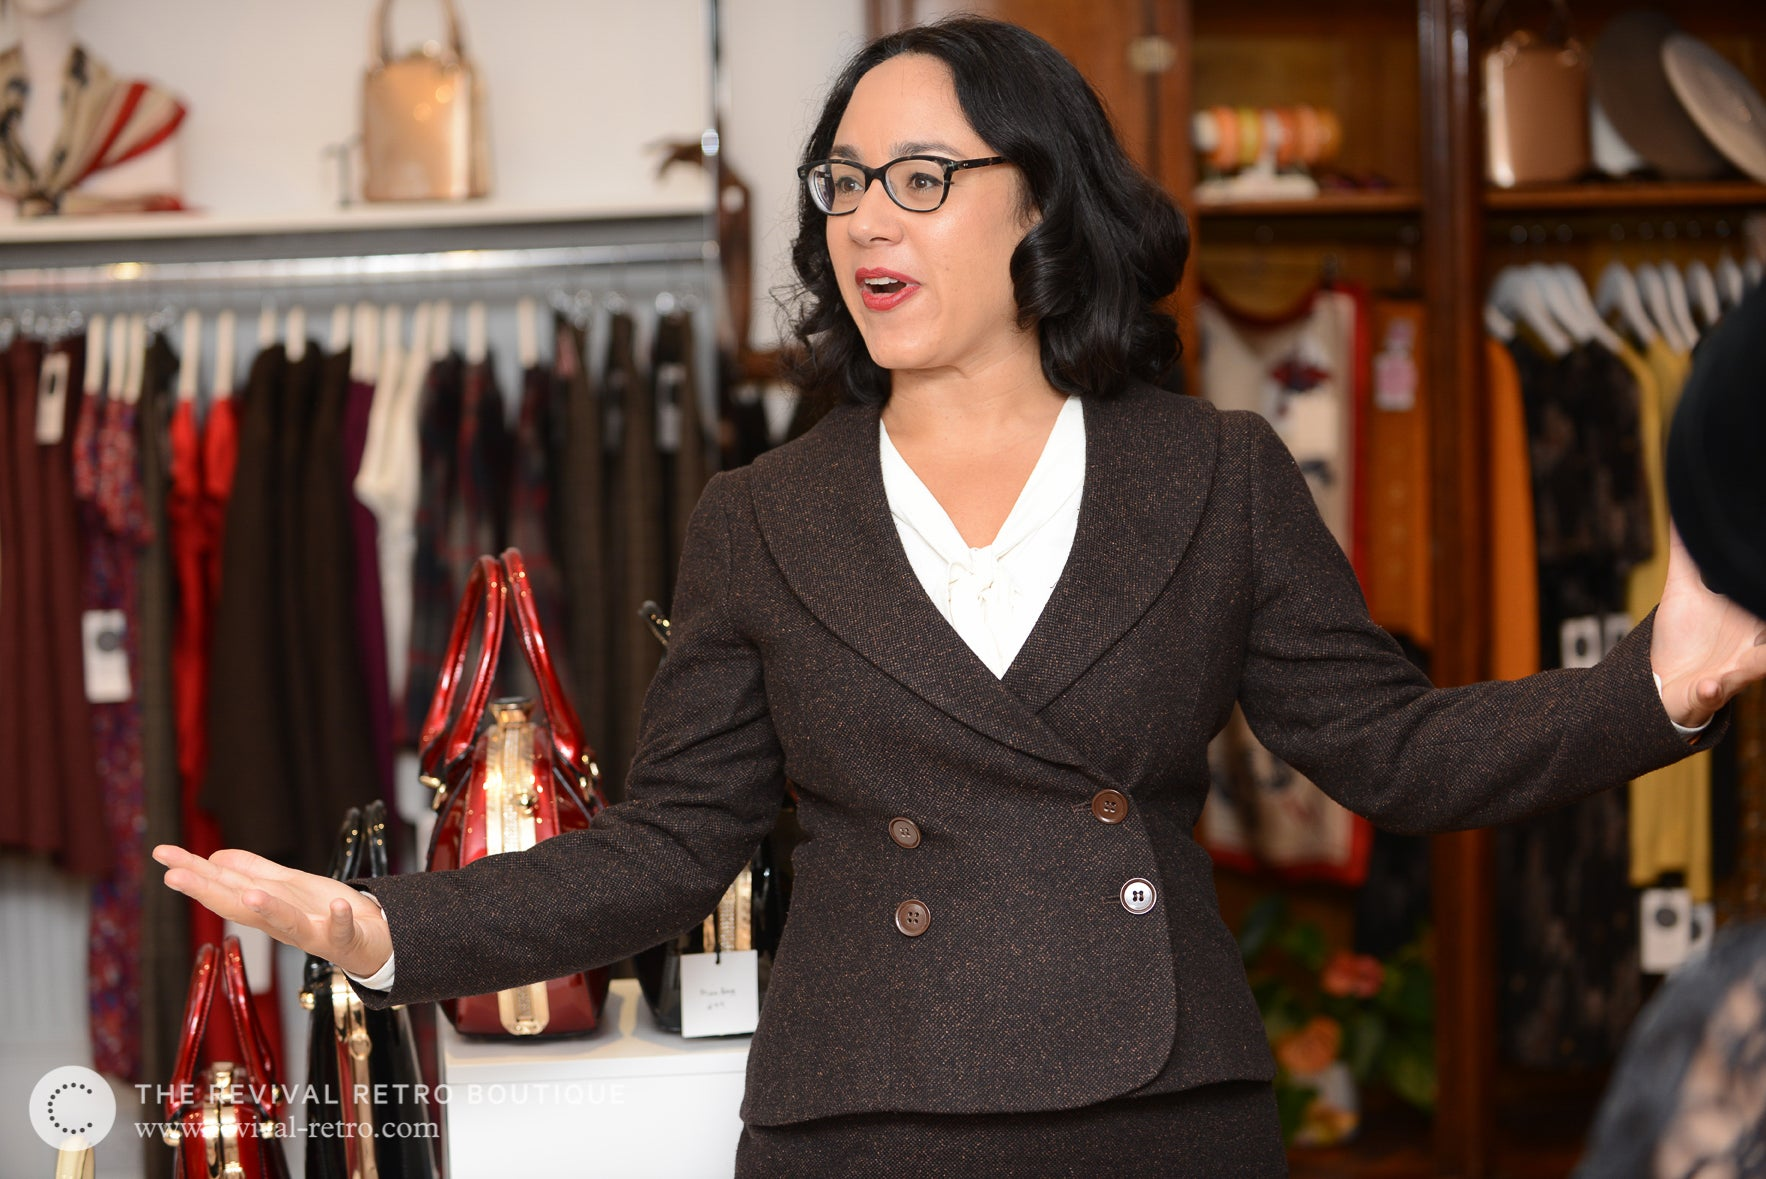 London designer of jackets for curvy women